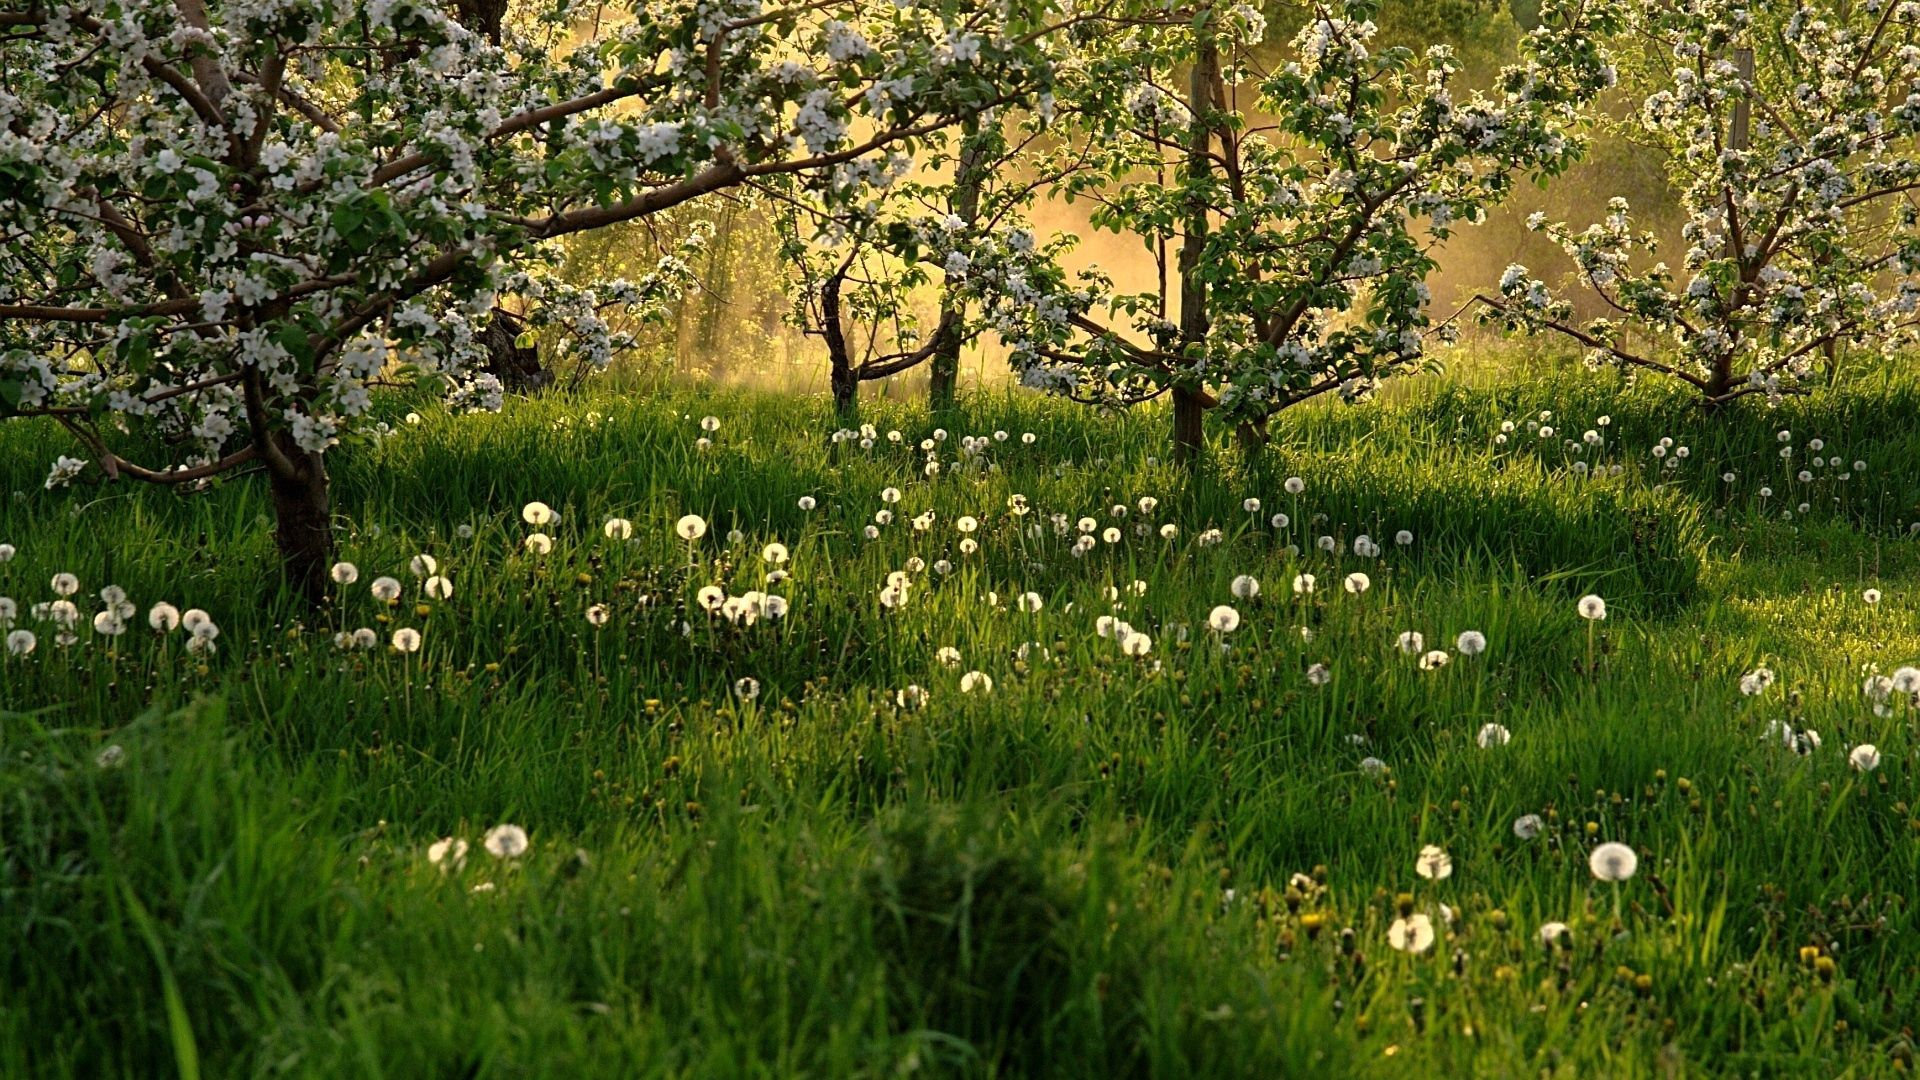 145637 download wallpaper Nature, Trees, Grass, Dandelions, Field screensavers and pictures for free